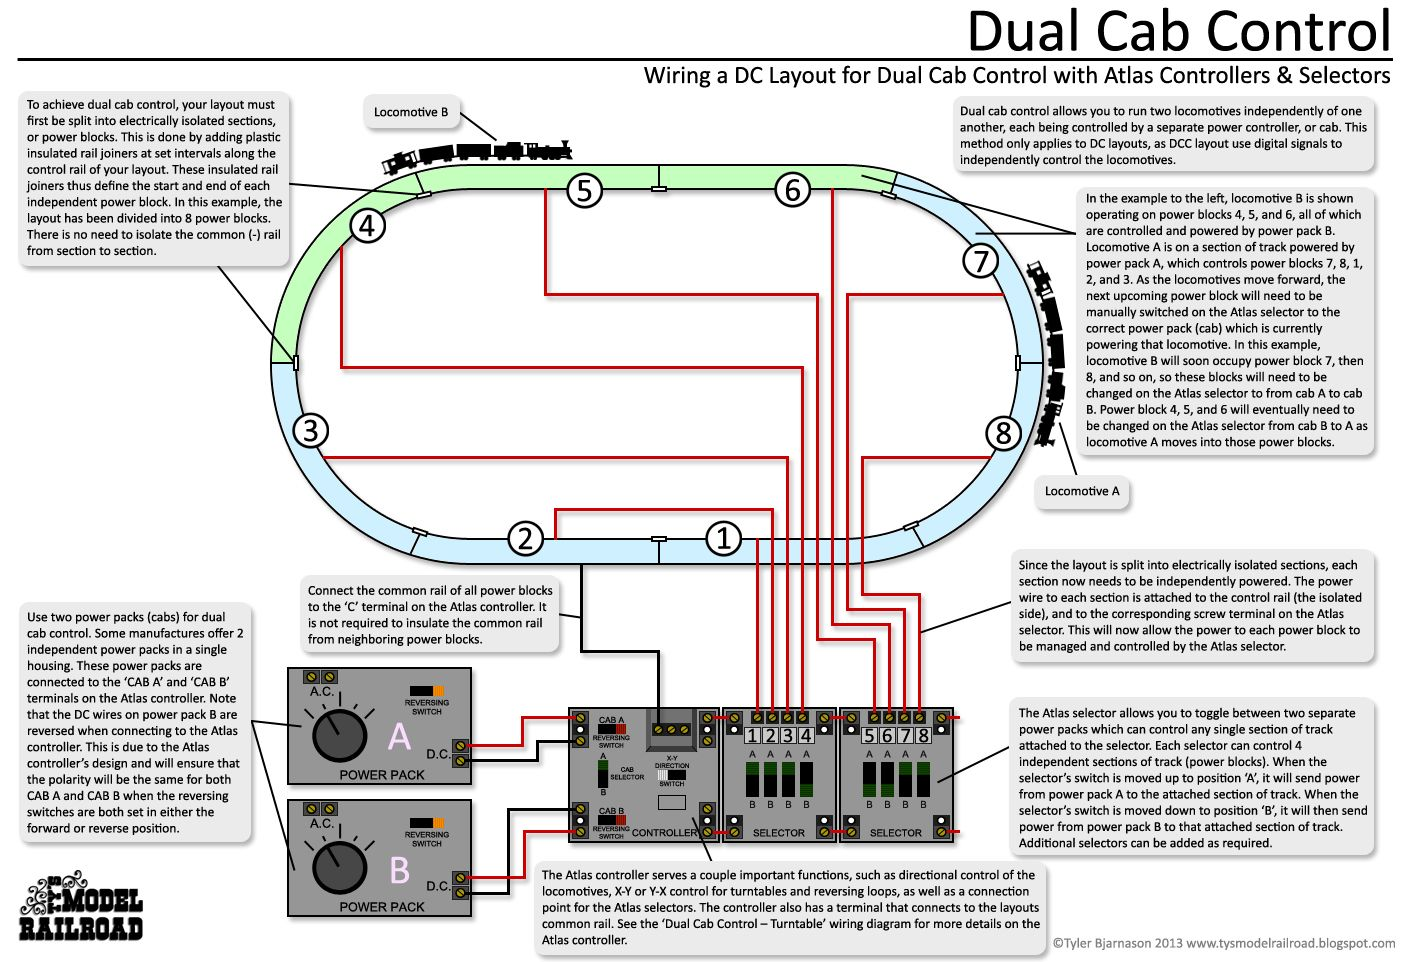 How to wire a layout for dual cab control using an Atlas controller and  selectors.